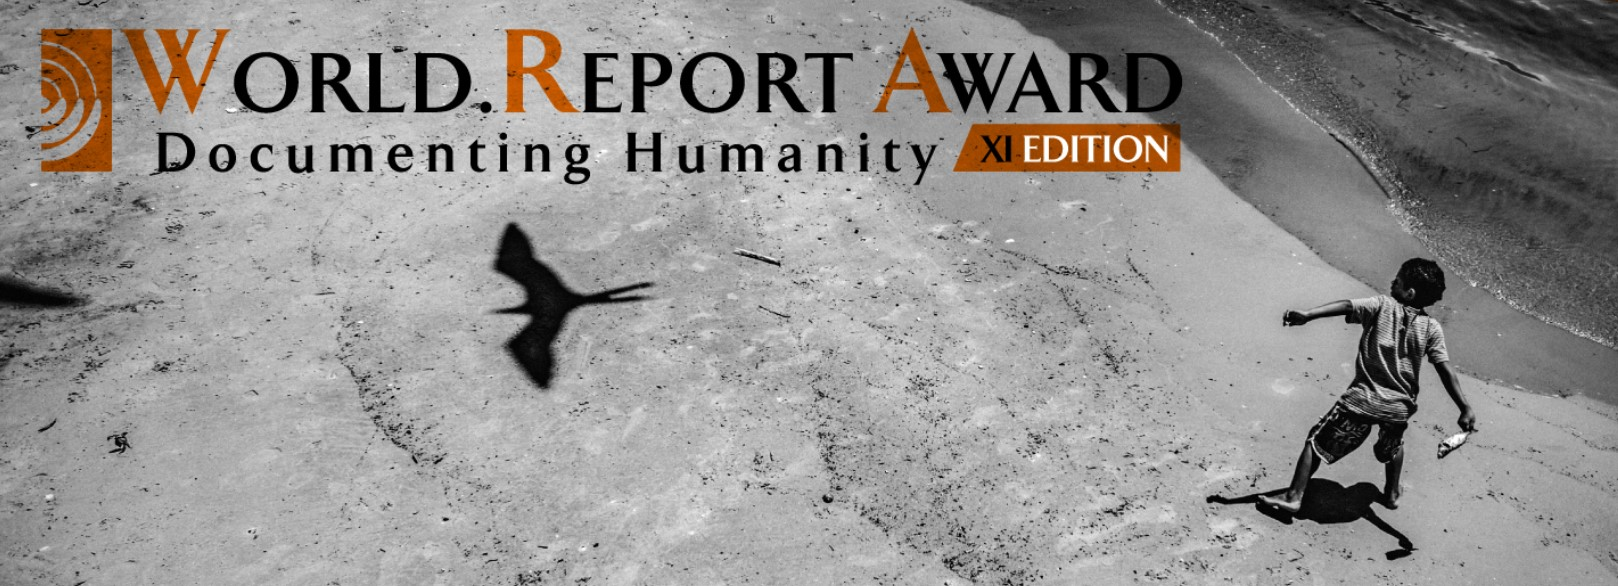 XI edizione del World.Report Award